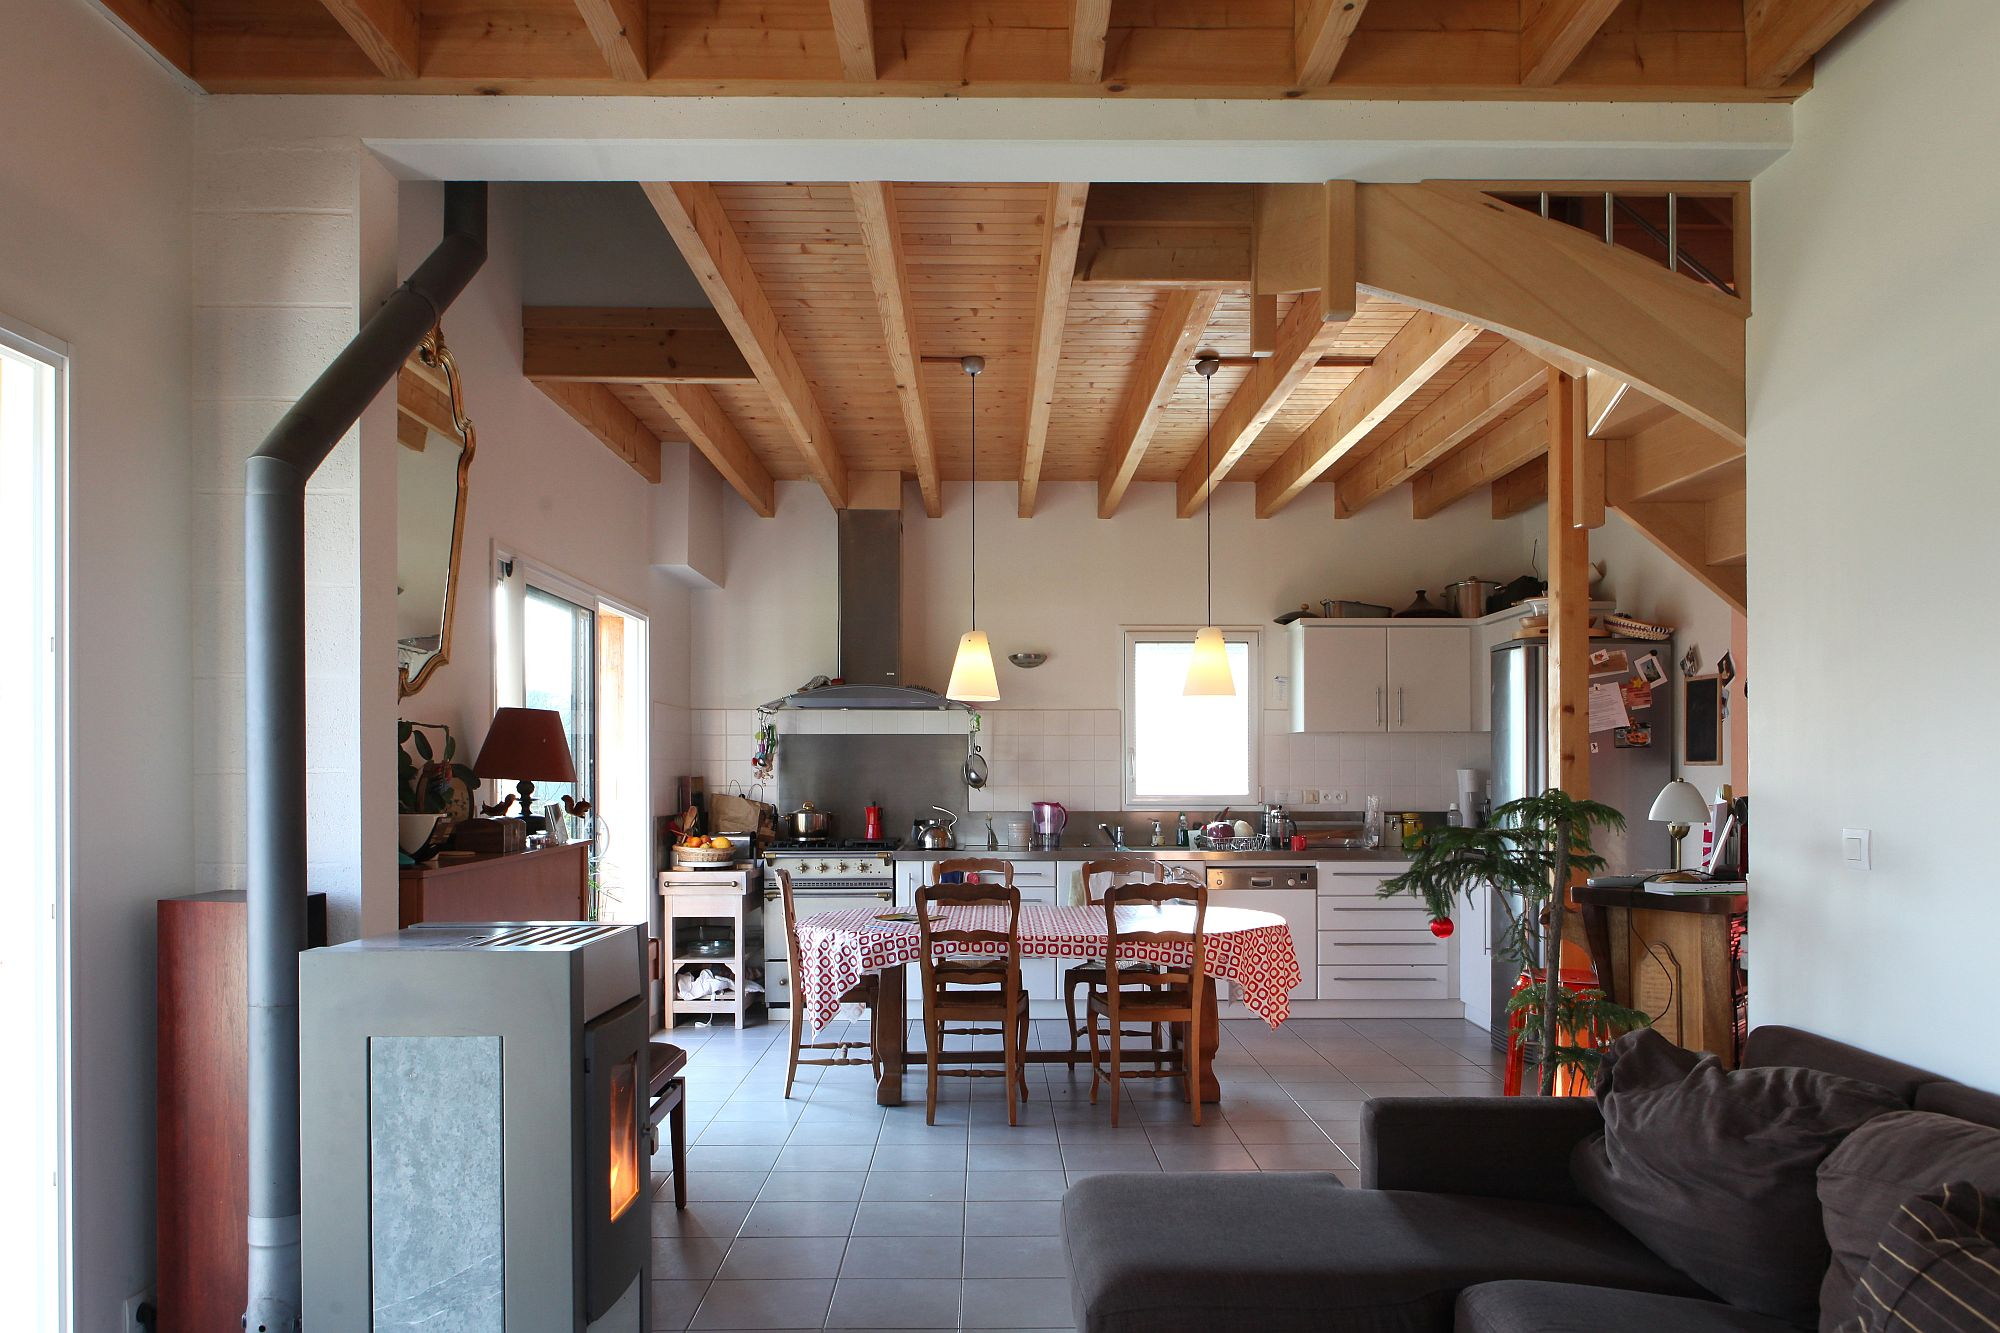 Social dining area and kitchen of he house with vernacular French cabin look